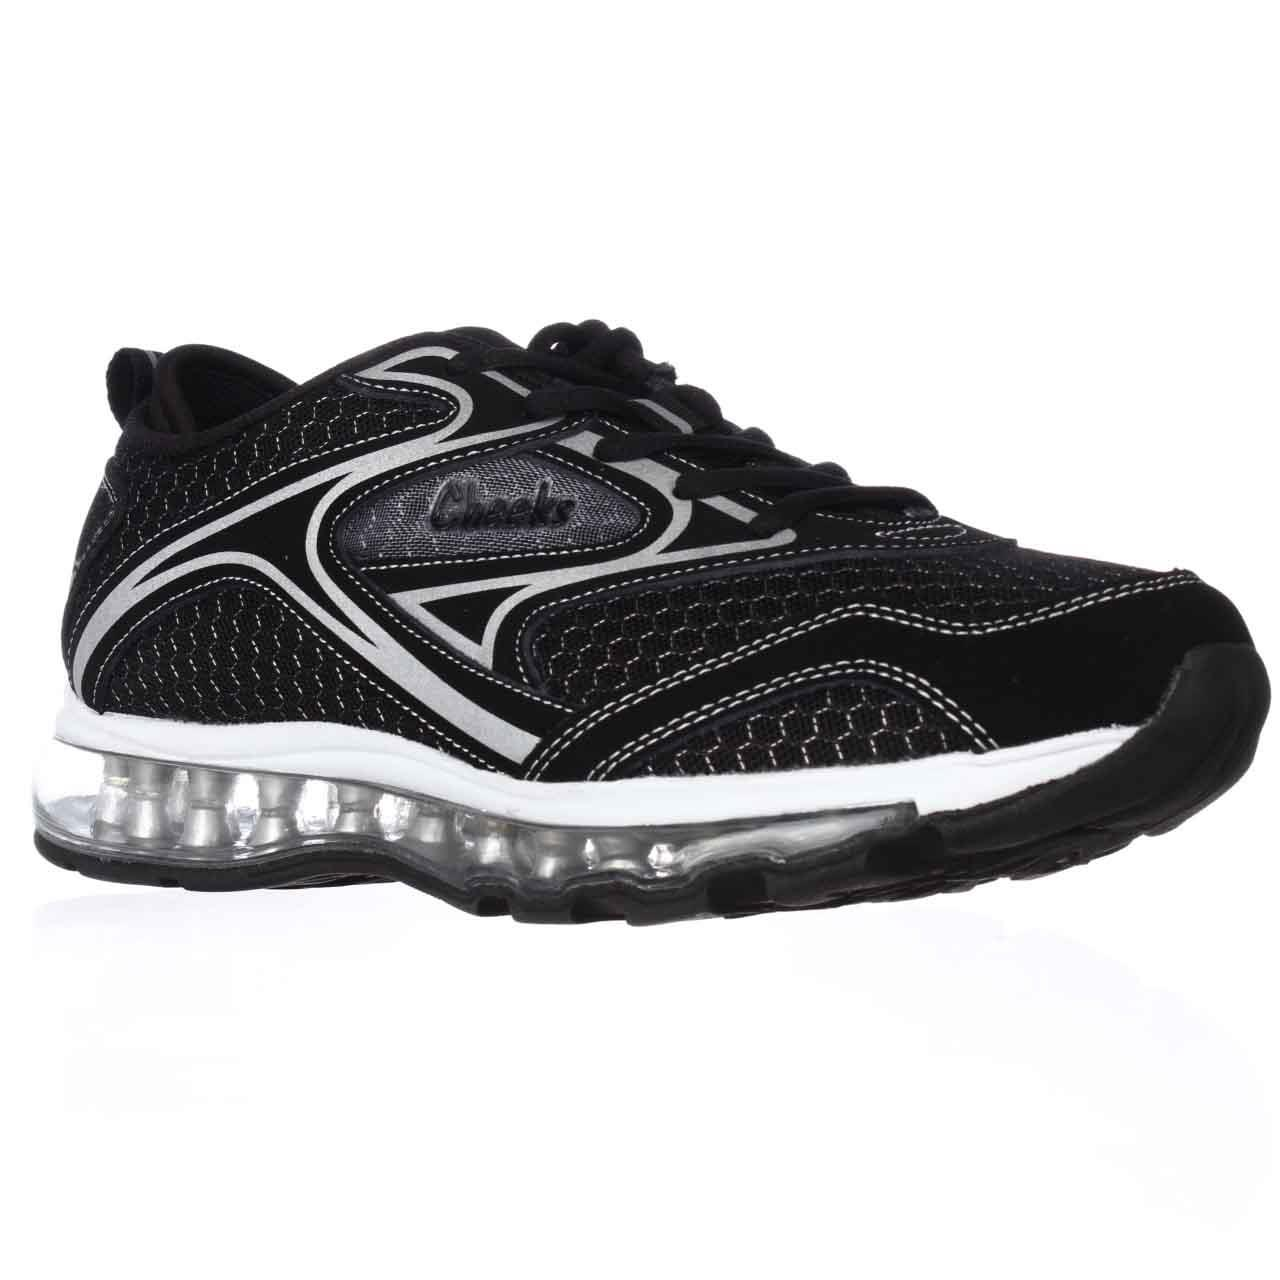 Womens Cheeks Air Trac Trainer Athletic Shoes - Black/Silver